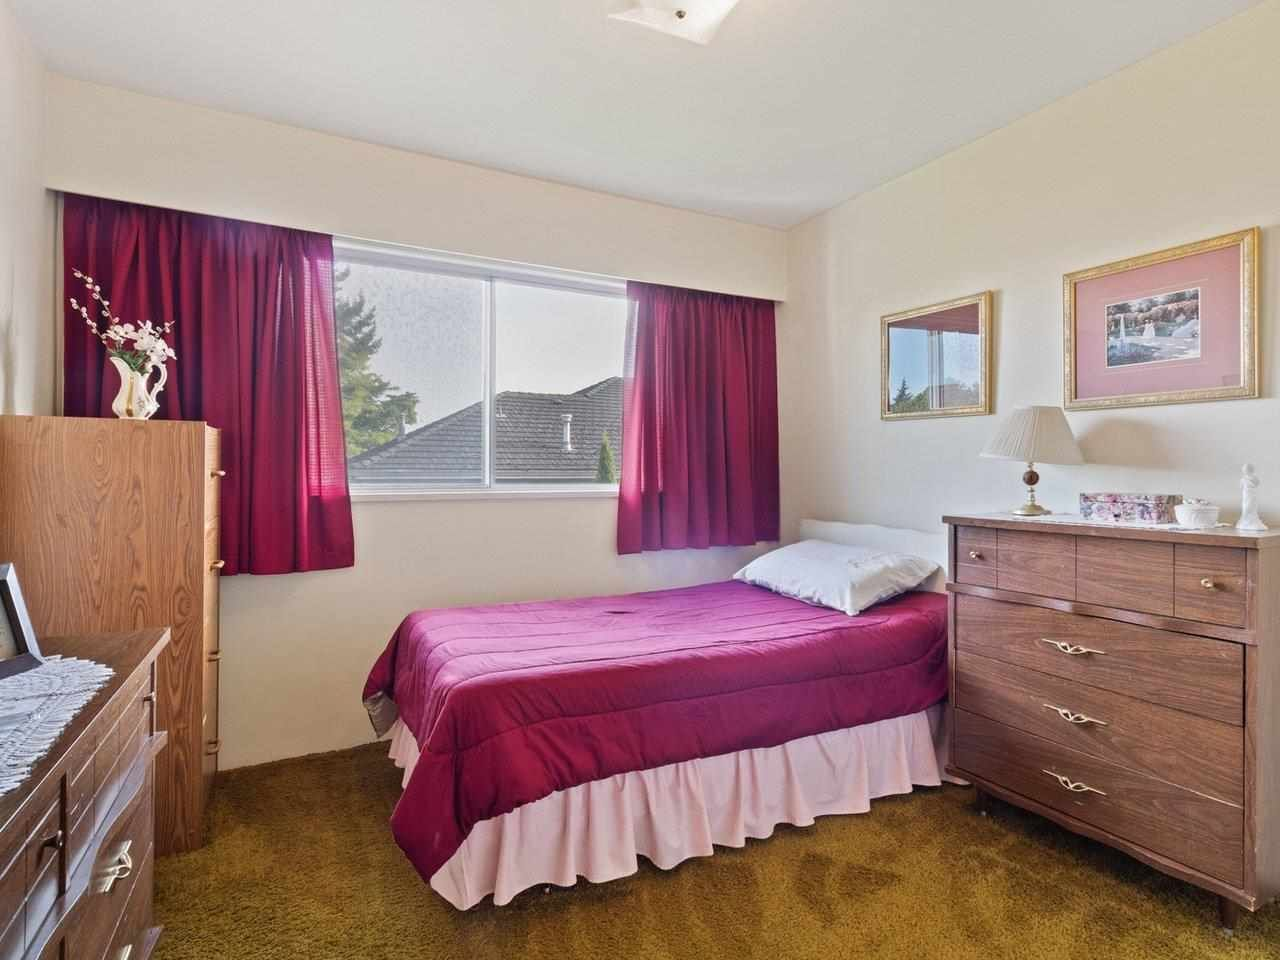 Photo 16: Photos: 1510 CHARLAND Avenue in Coquitlam: Central Coquitlam House for sale : MLS®# R2577681